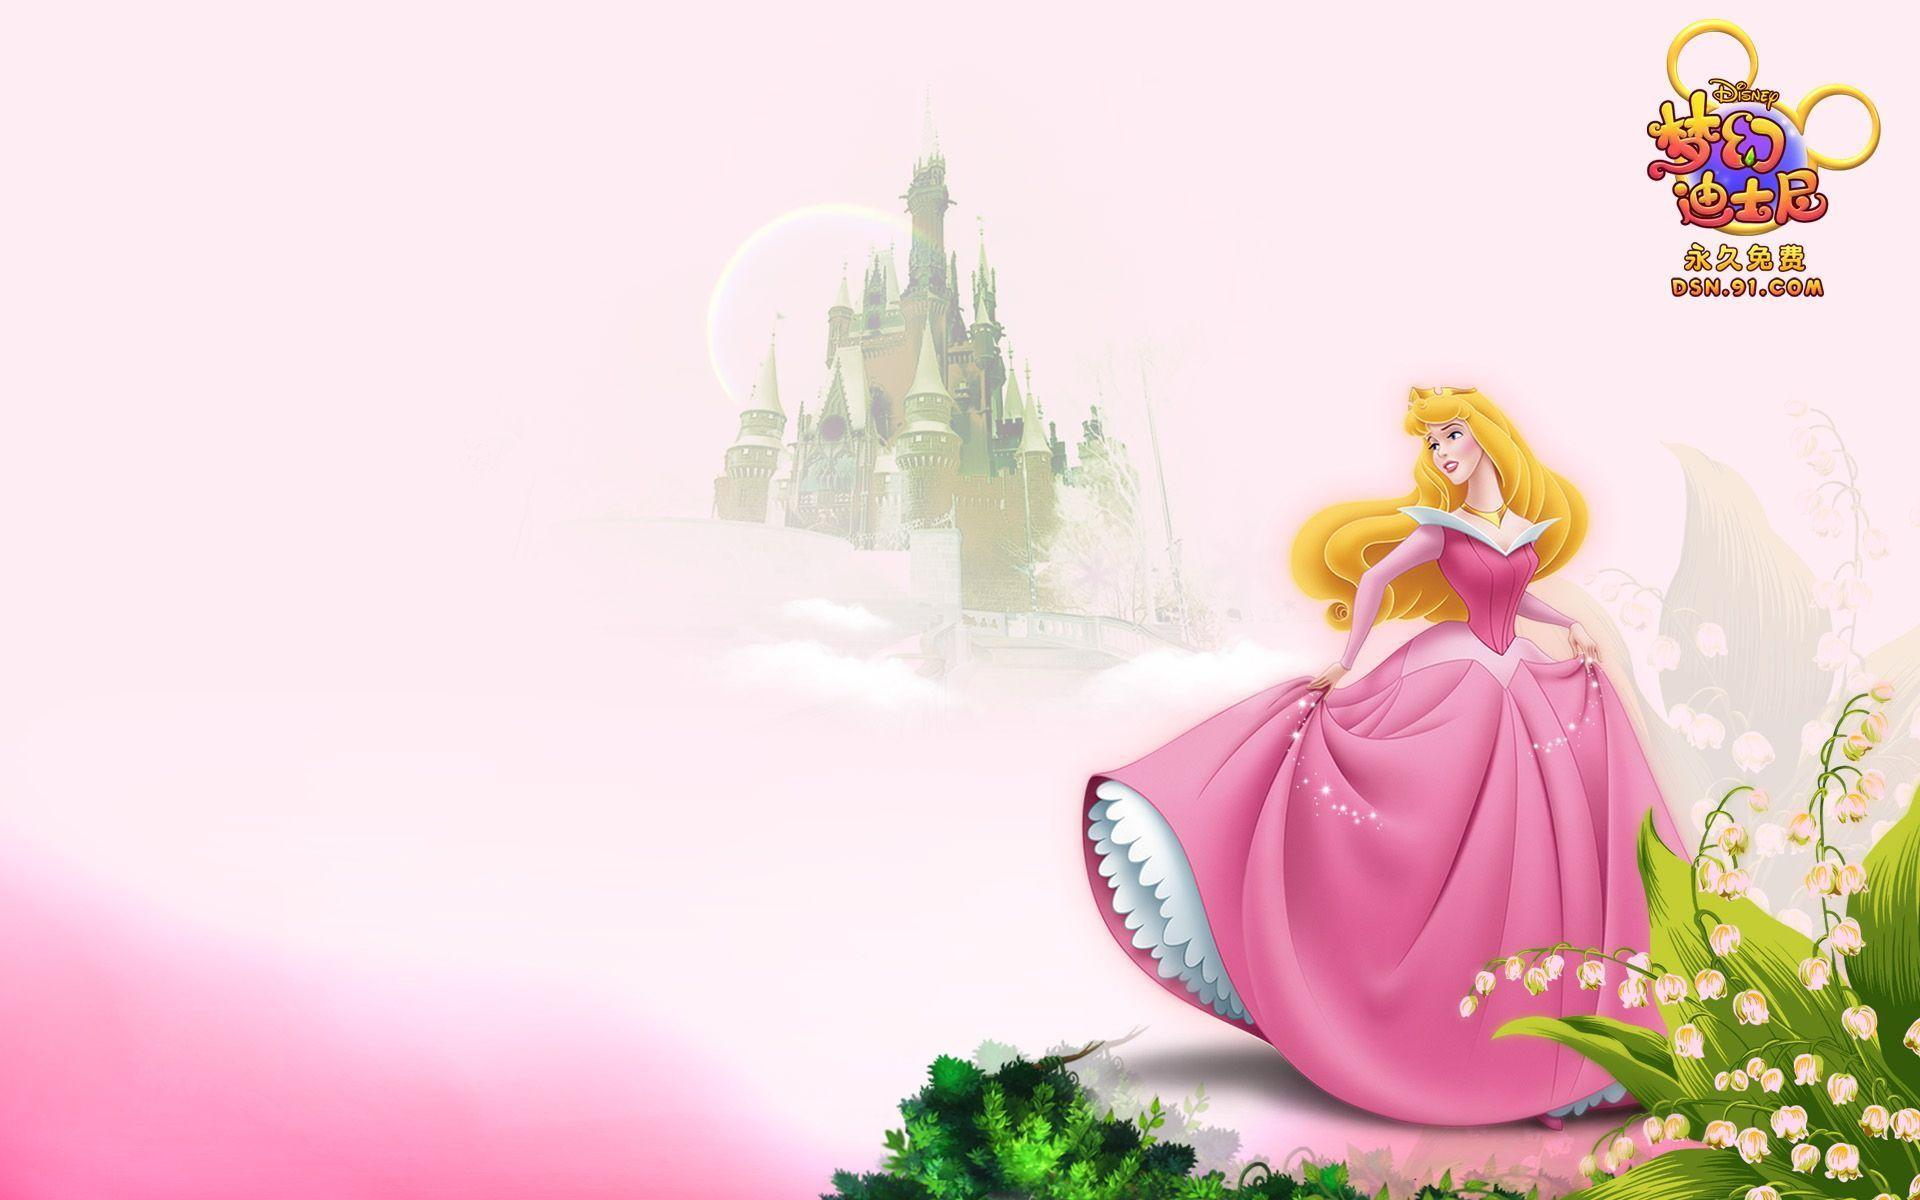 Disney Princess Backgrounds - Wallpaper Cave